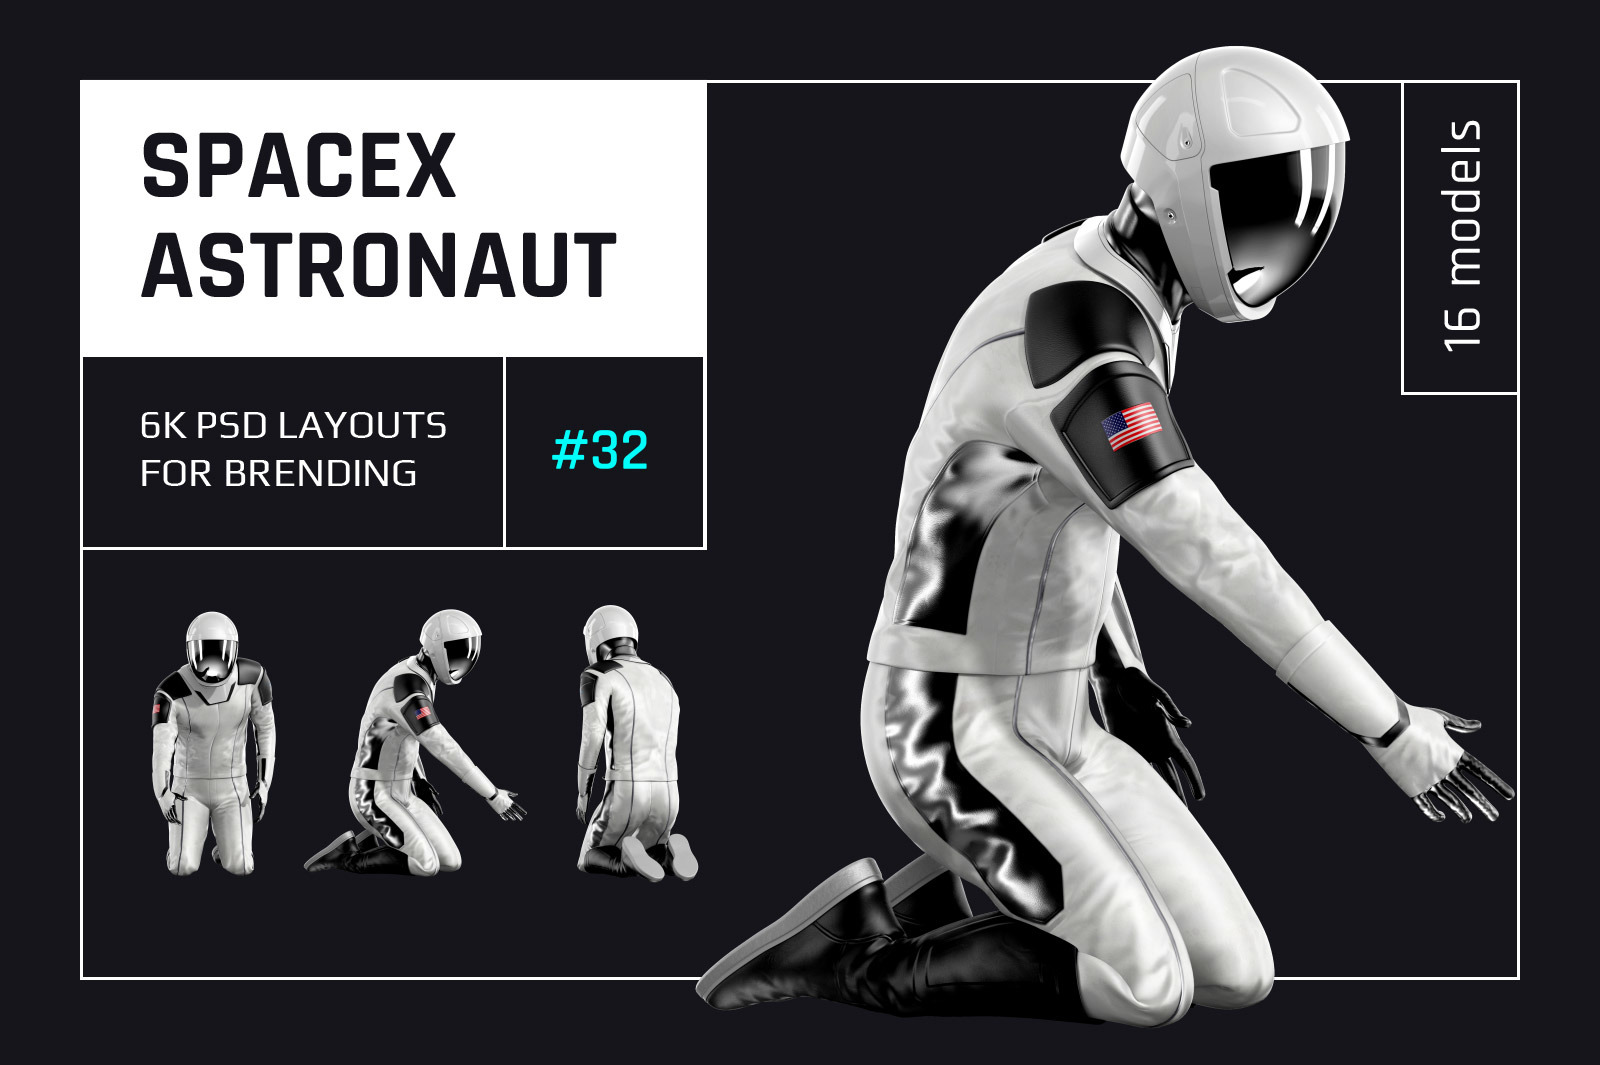 PSD Mockup 3D model SpaceX Astronaut #32